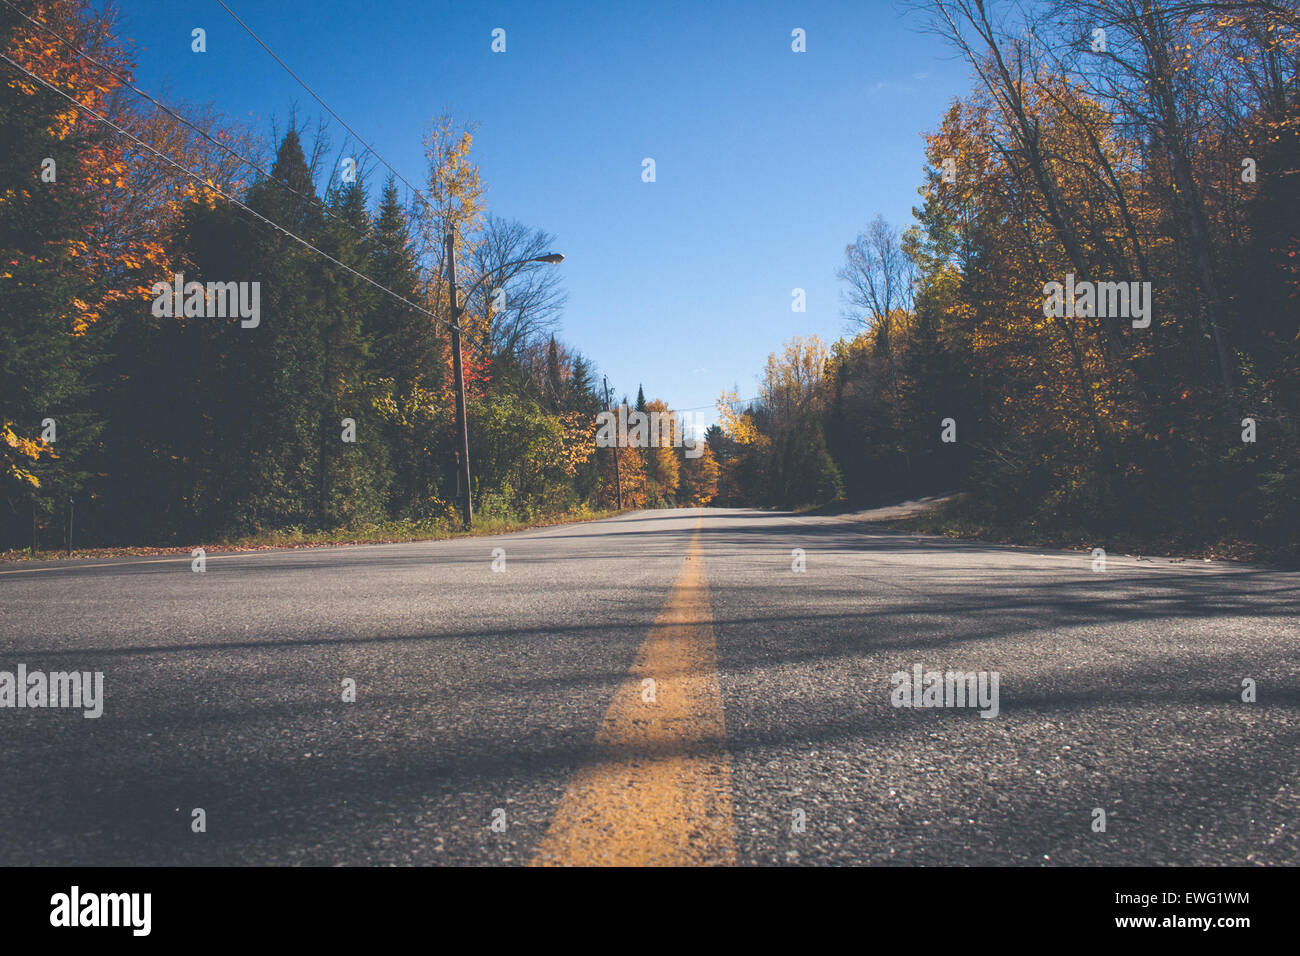 Road with Yellow Line Surrounded by Trees Street outdoor road trees  yellow line autumn - Stock Image